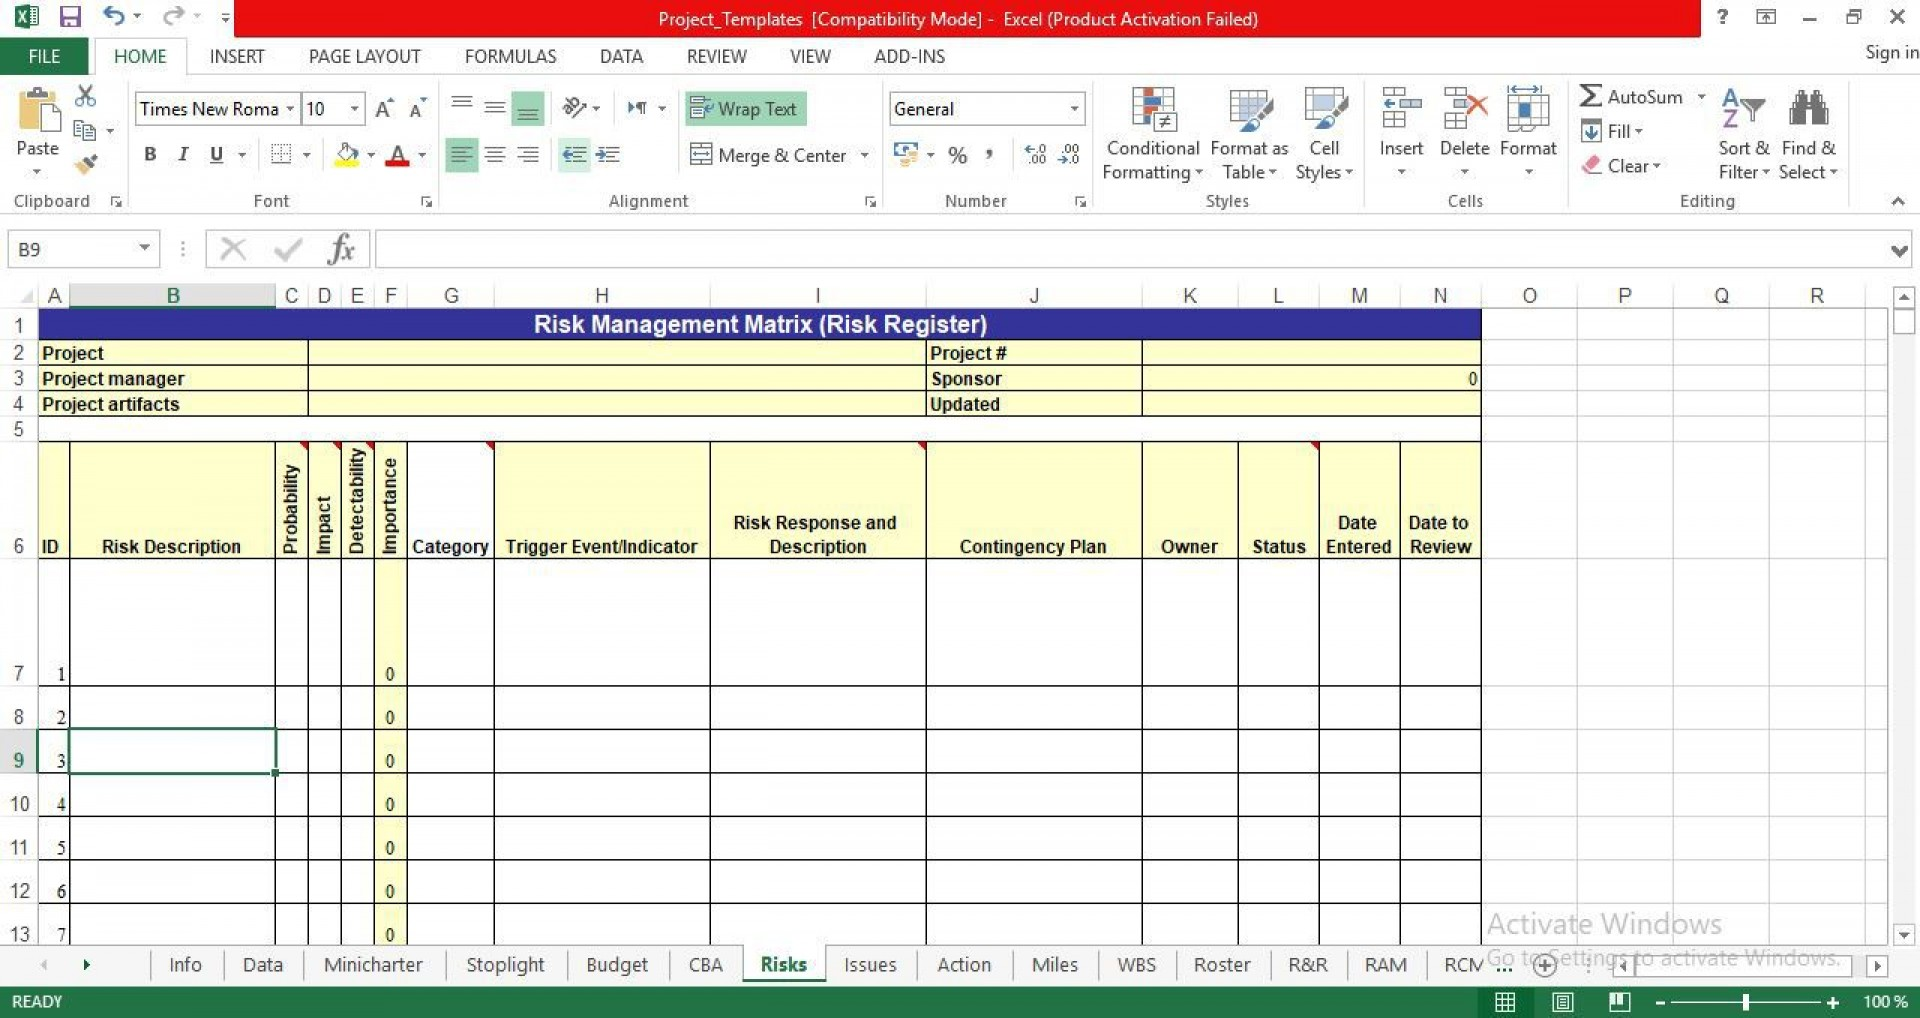 006 Stirring Project Management Form Free Download High Resolution  Dashboard Excel Template Plan1920